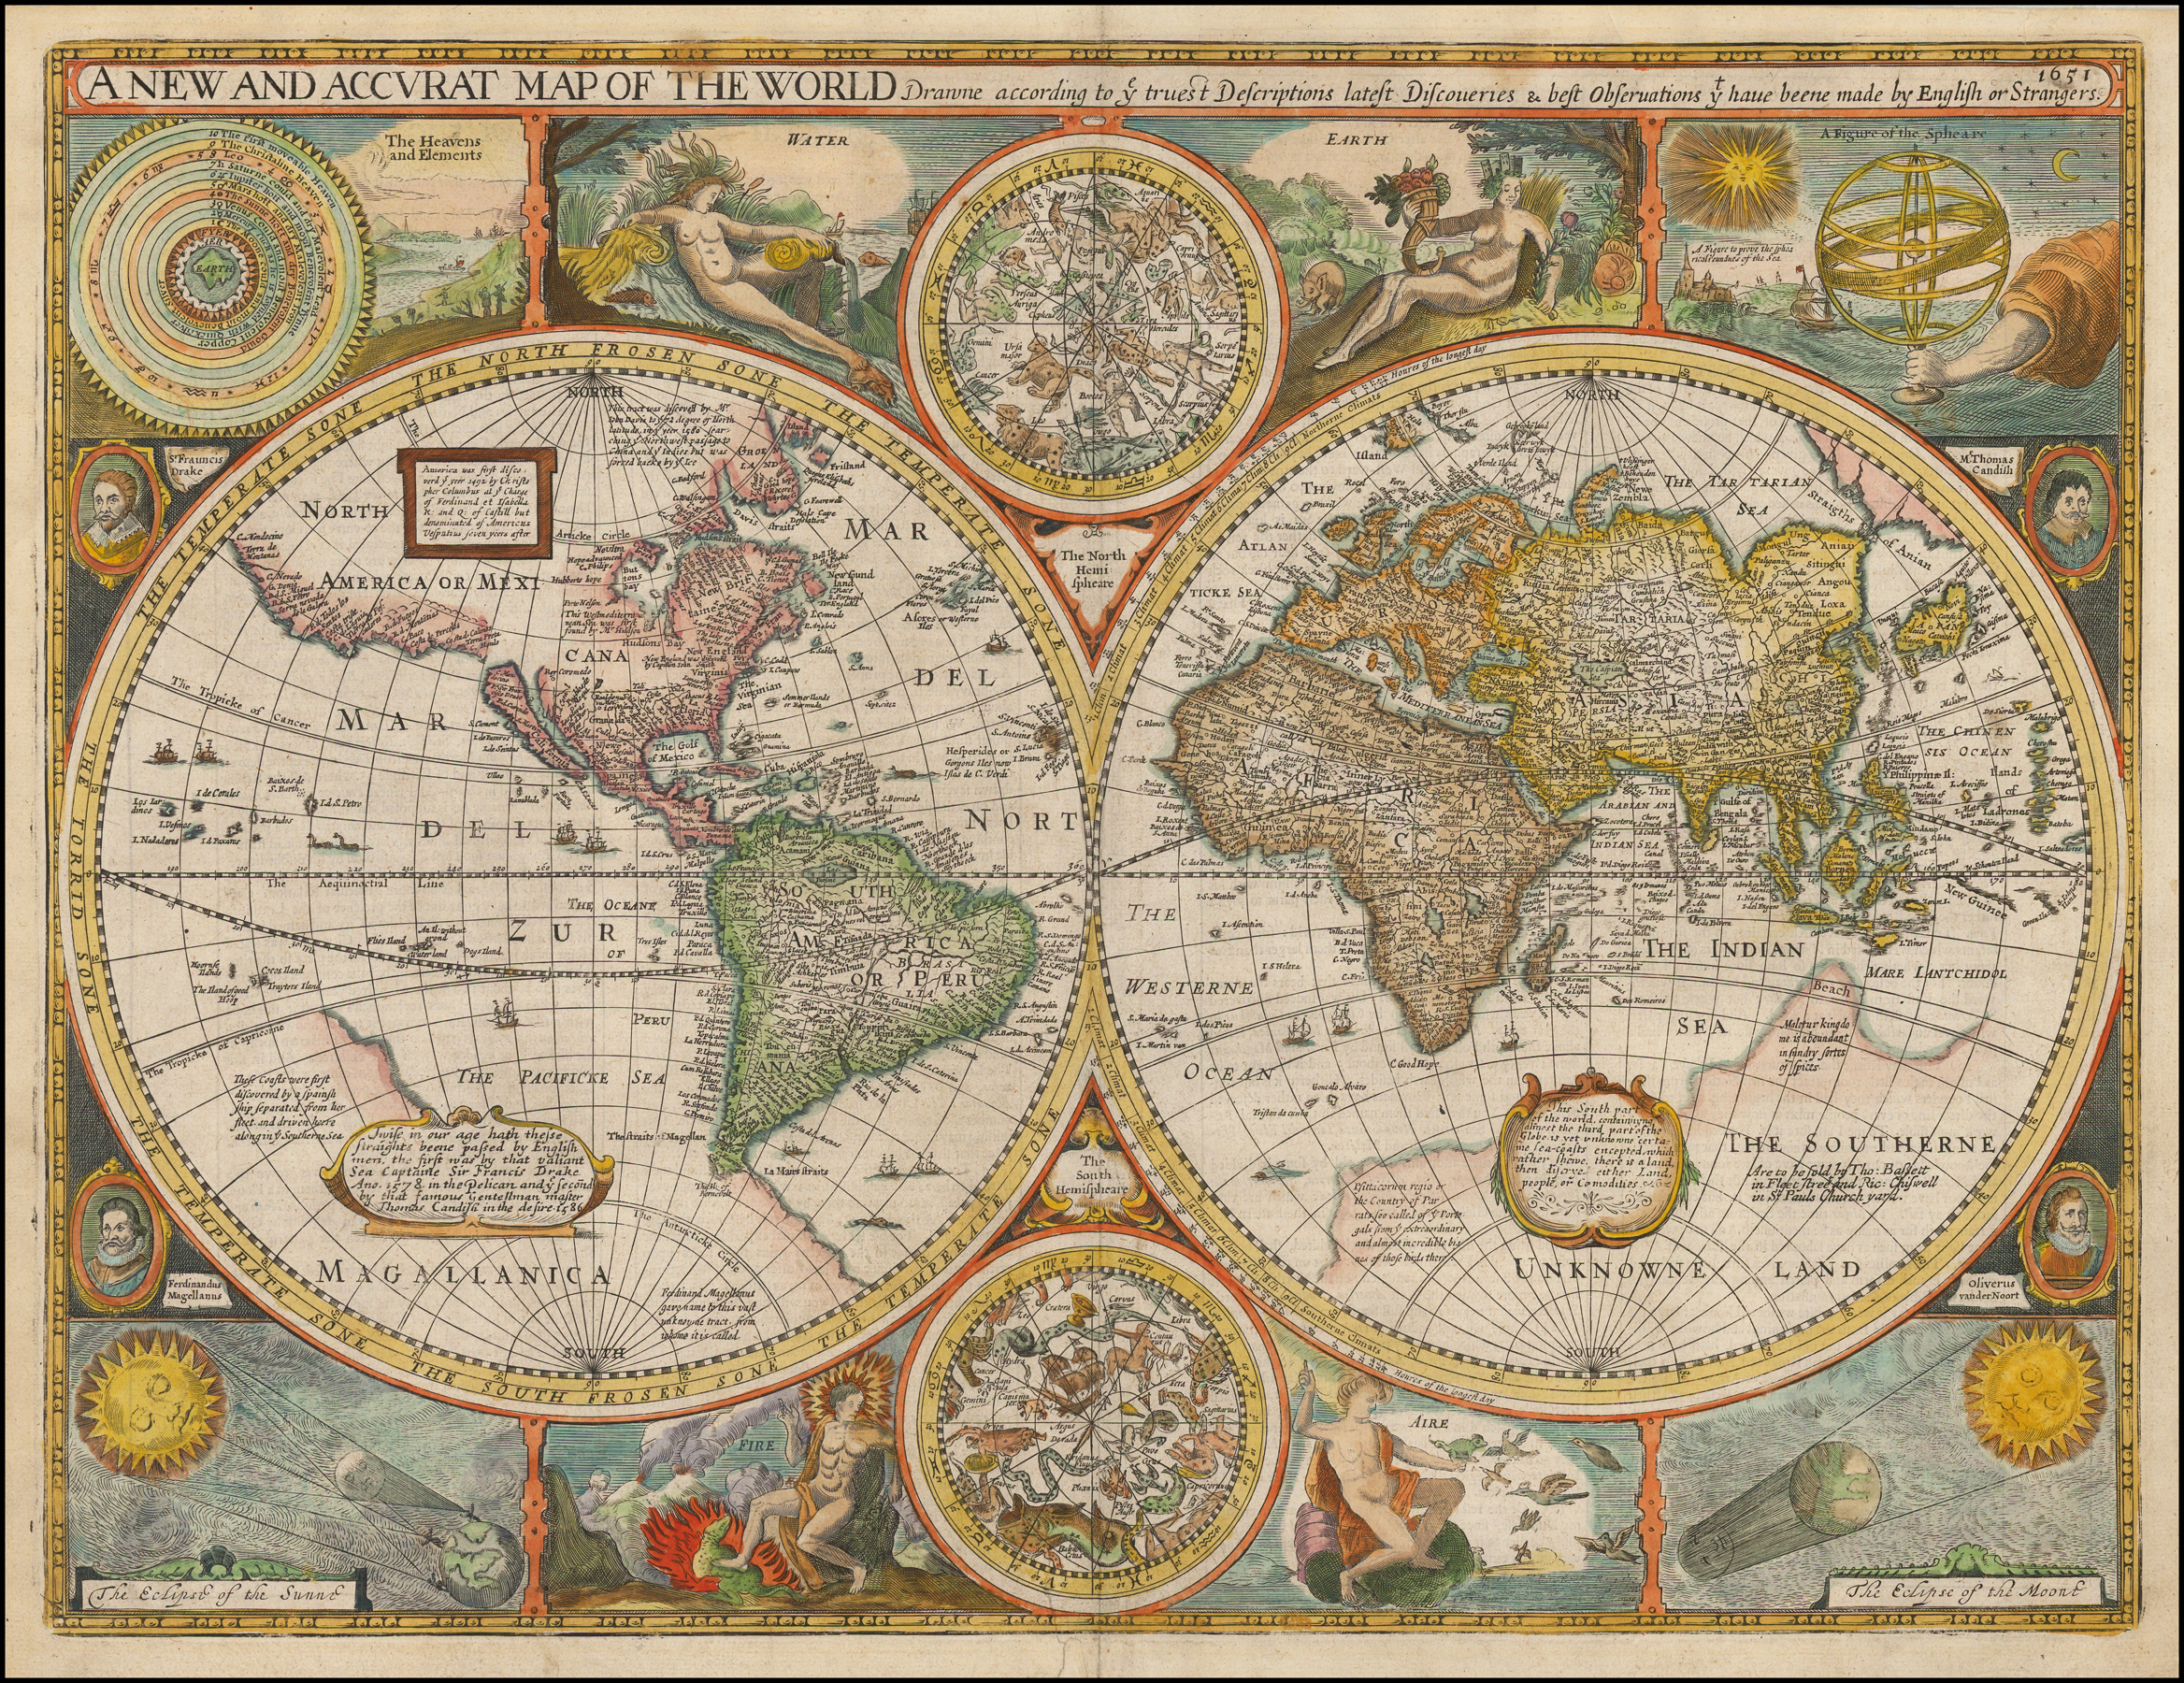 The New Map Of The World.A New And Accurat Map Of The World Drawne According To Ye Truest